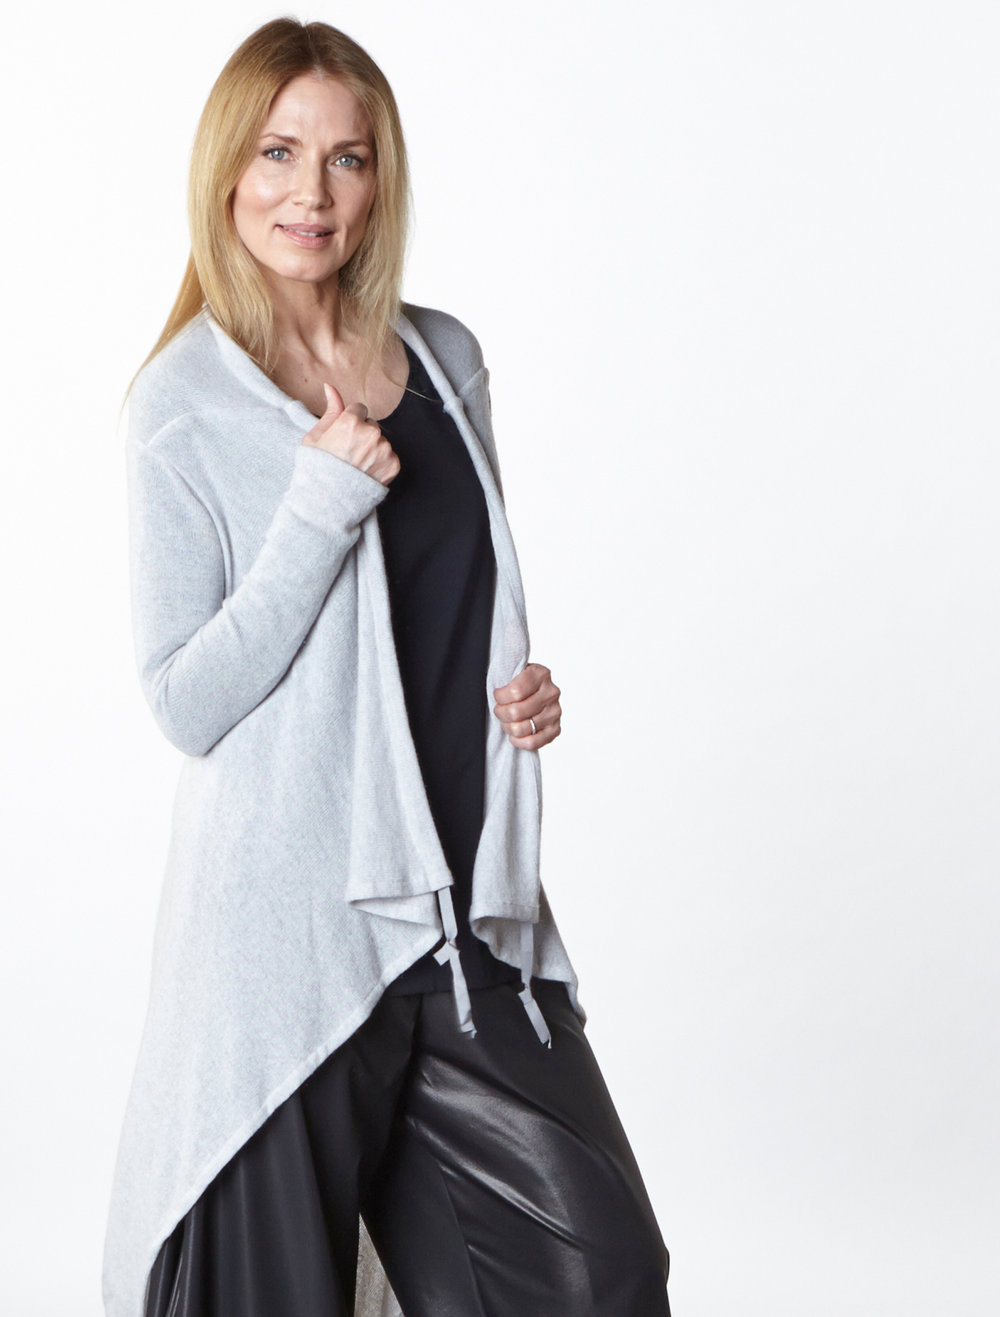 Eve Cardigan in Light Grey Italian Wool, Lois Tunic in Black Italian Viscose Jersey, Hamish Pant in Black Italian Laminato